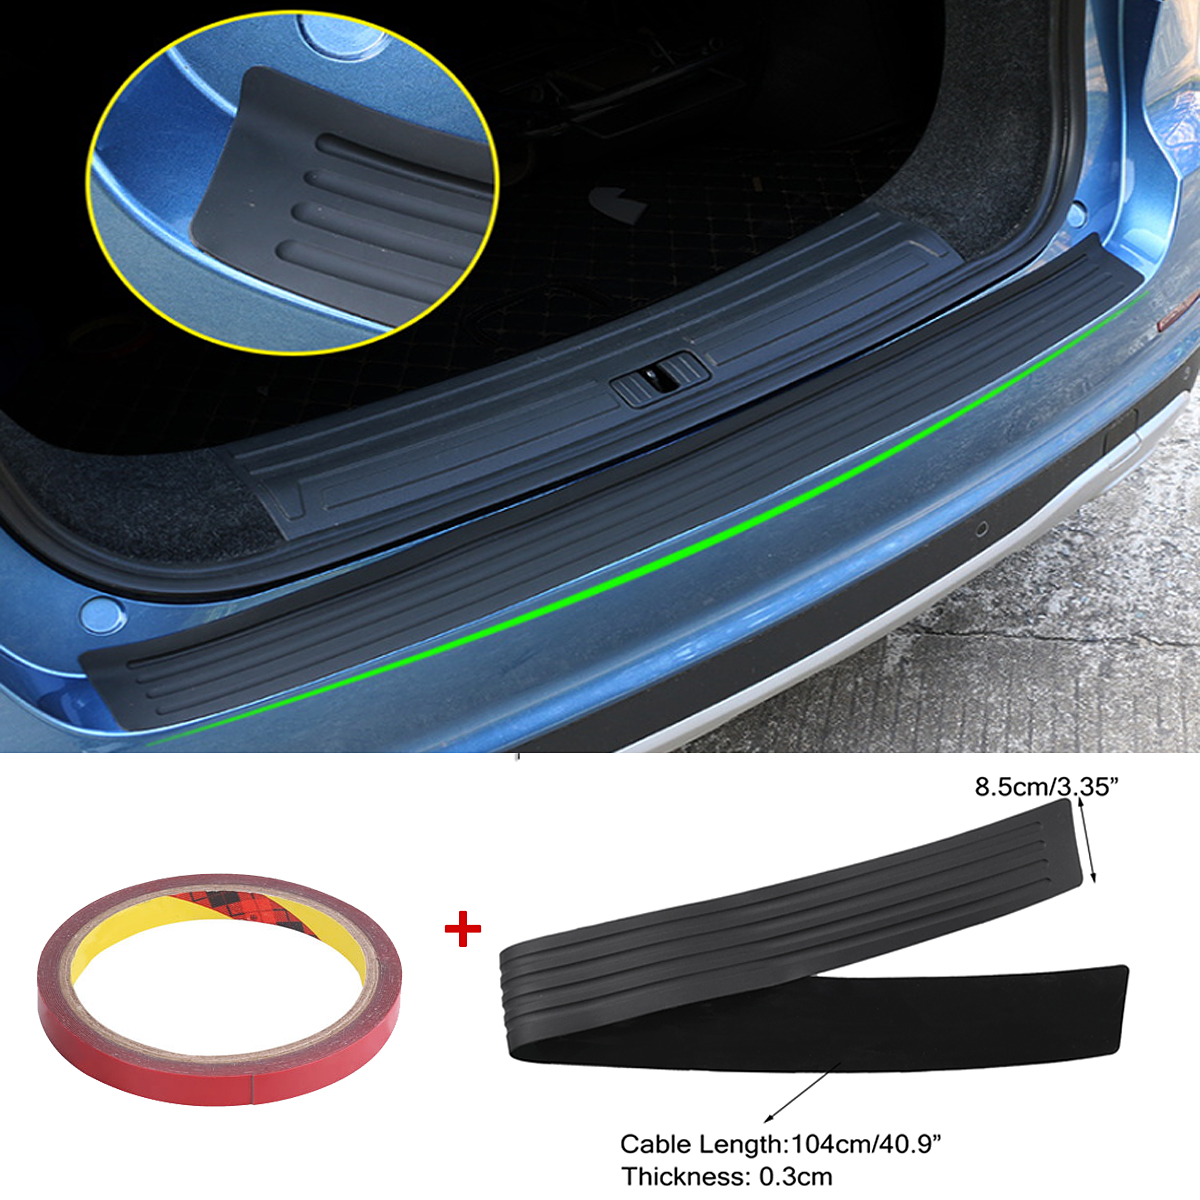 Car Rear Bumper Sill Protector Plate Cover Guard Moulding Trim For Audi VW SUV